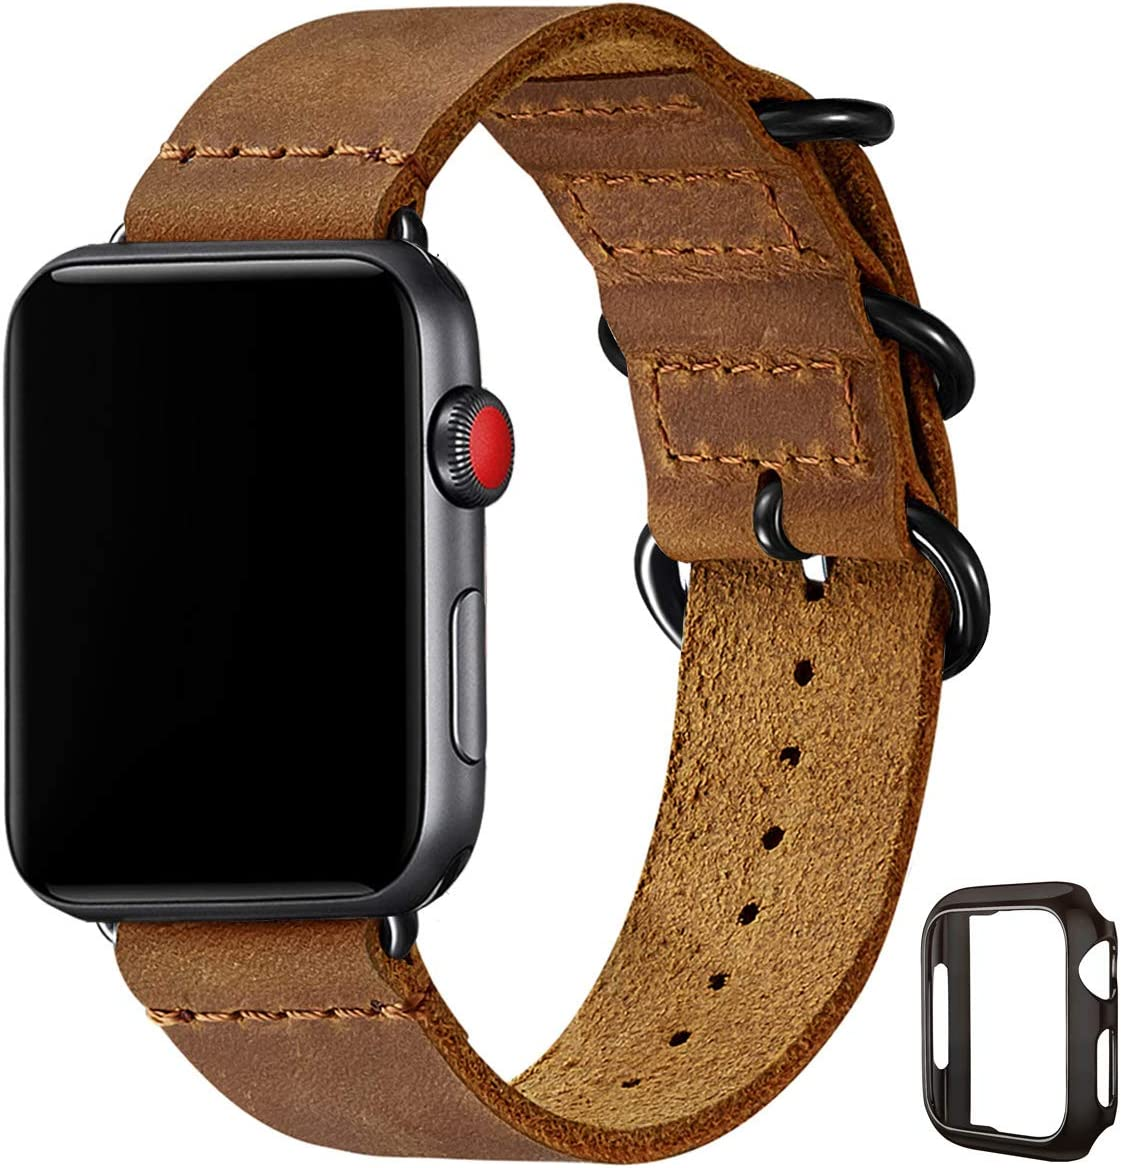 Vintage Leather Bands Compatible with Apple Watch Band 42mm 44mm,Genuine Leather Retro Strap Compatible for Men Women iWatch SE Series 6/5/4/3/2/1(Light Brown/Black,42mm 44mm)